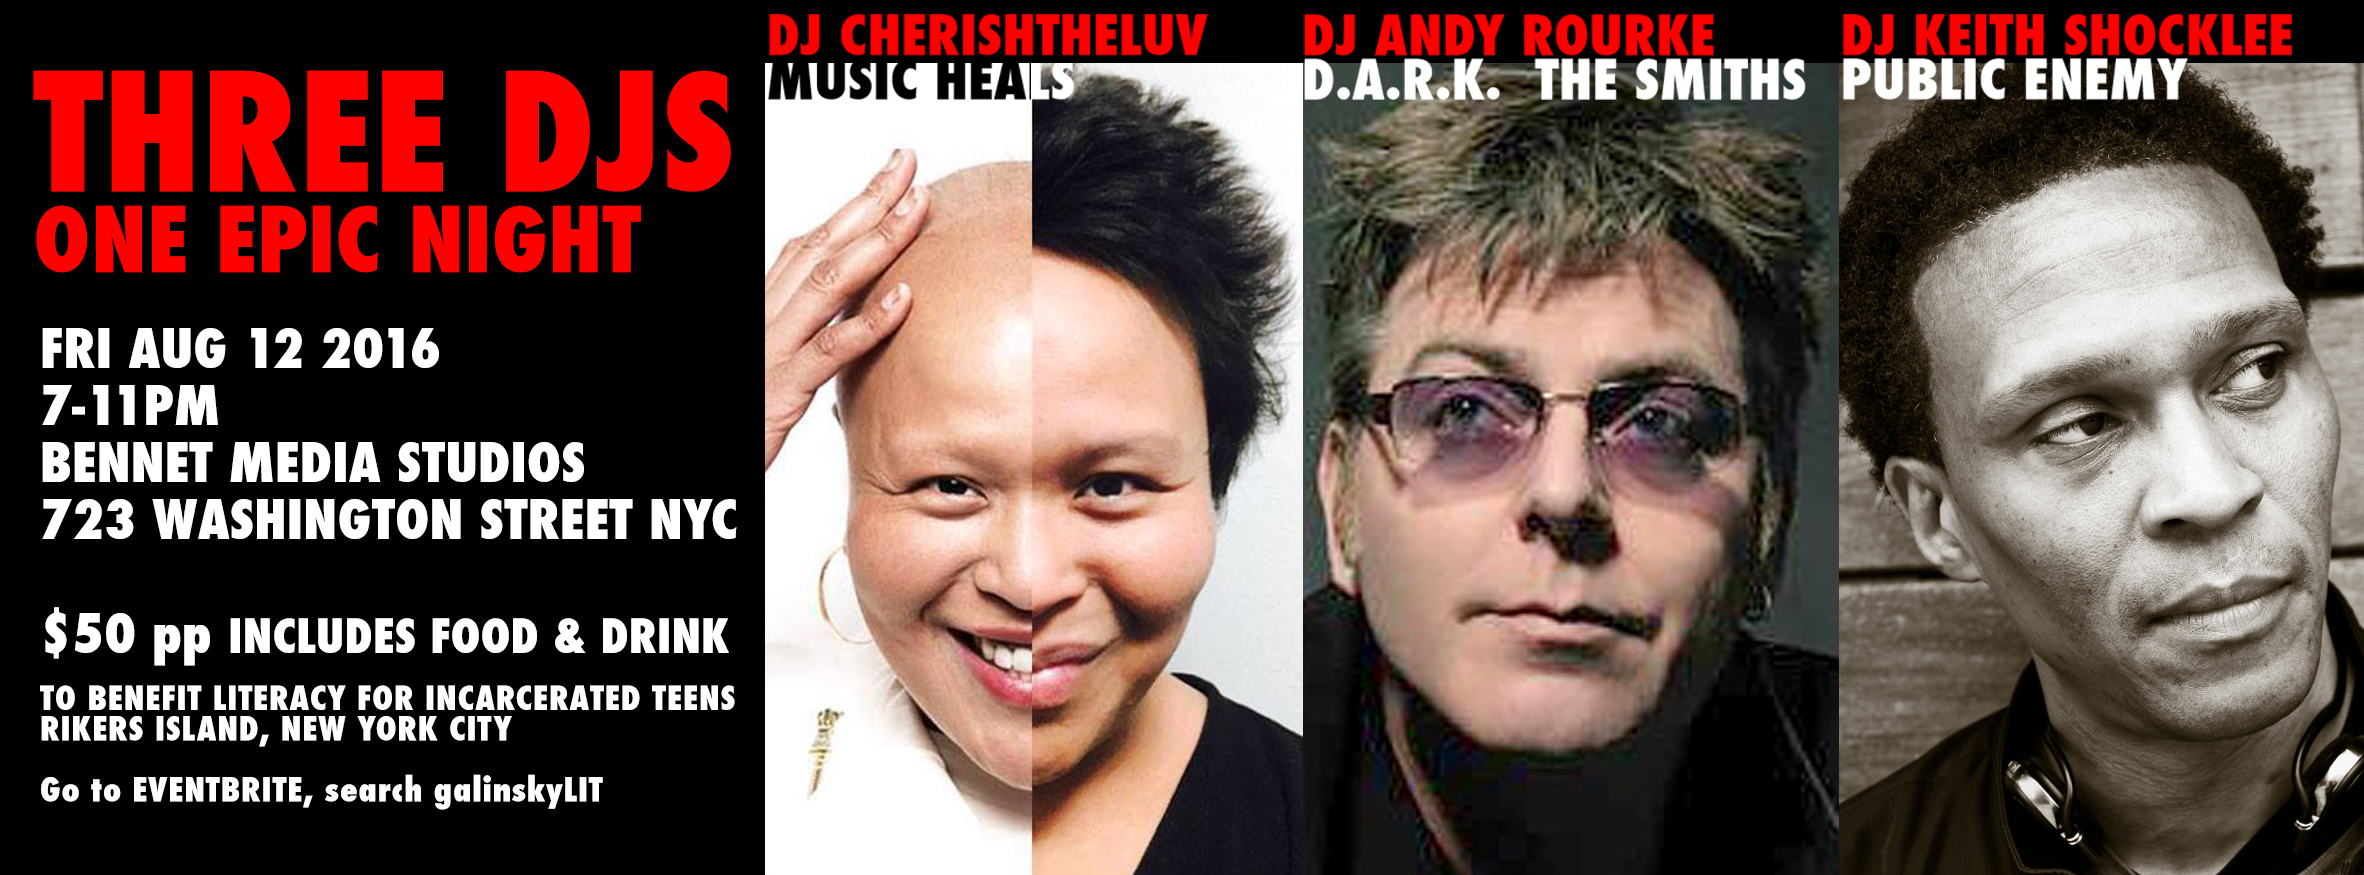 DJ CherishTheLuv Cynthia Malaran, Andy Rourke The Smiths, D. A. R. K., Keith Shocklee Public Enemy